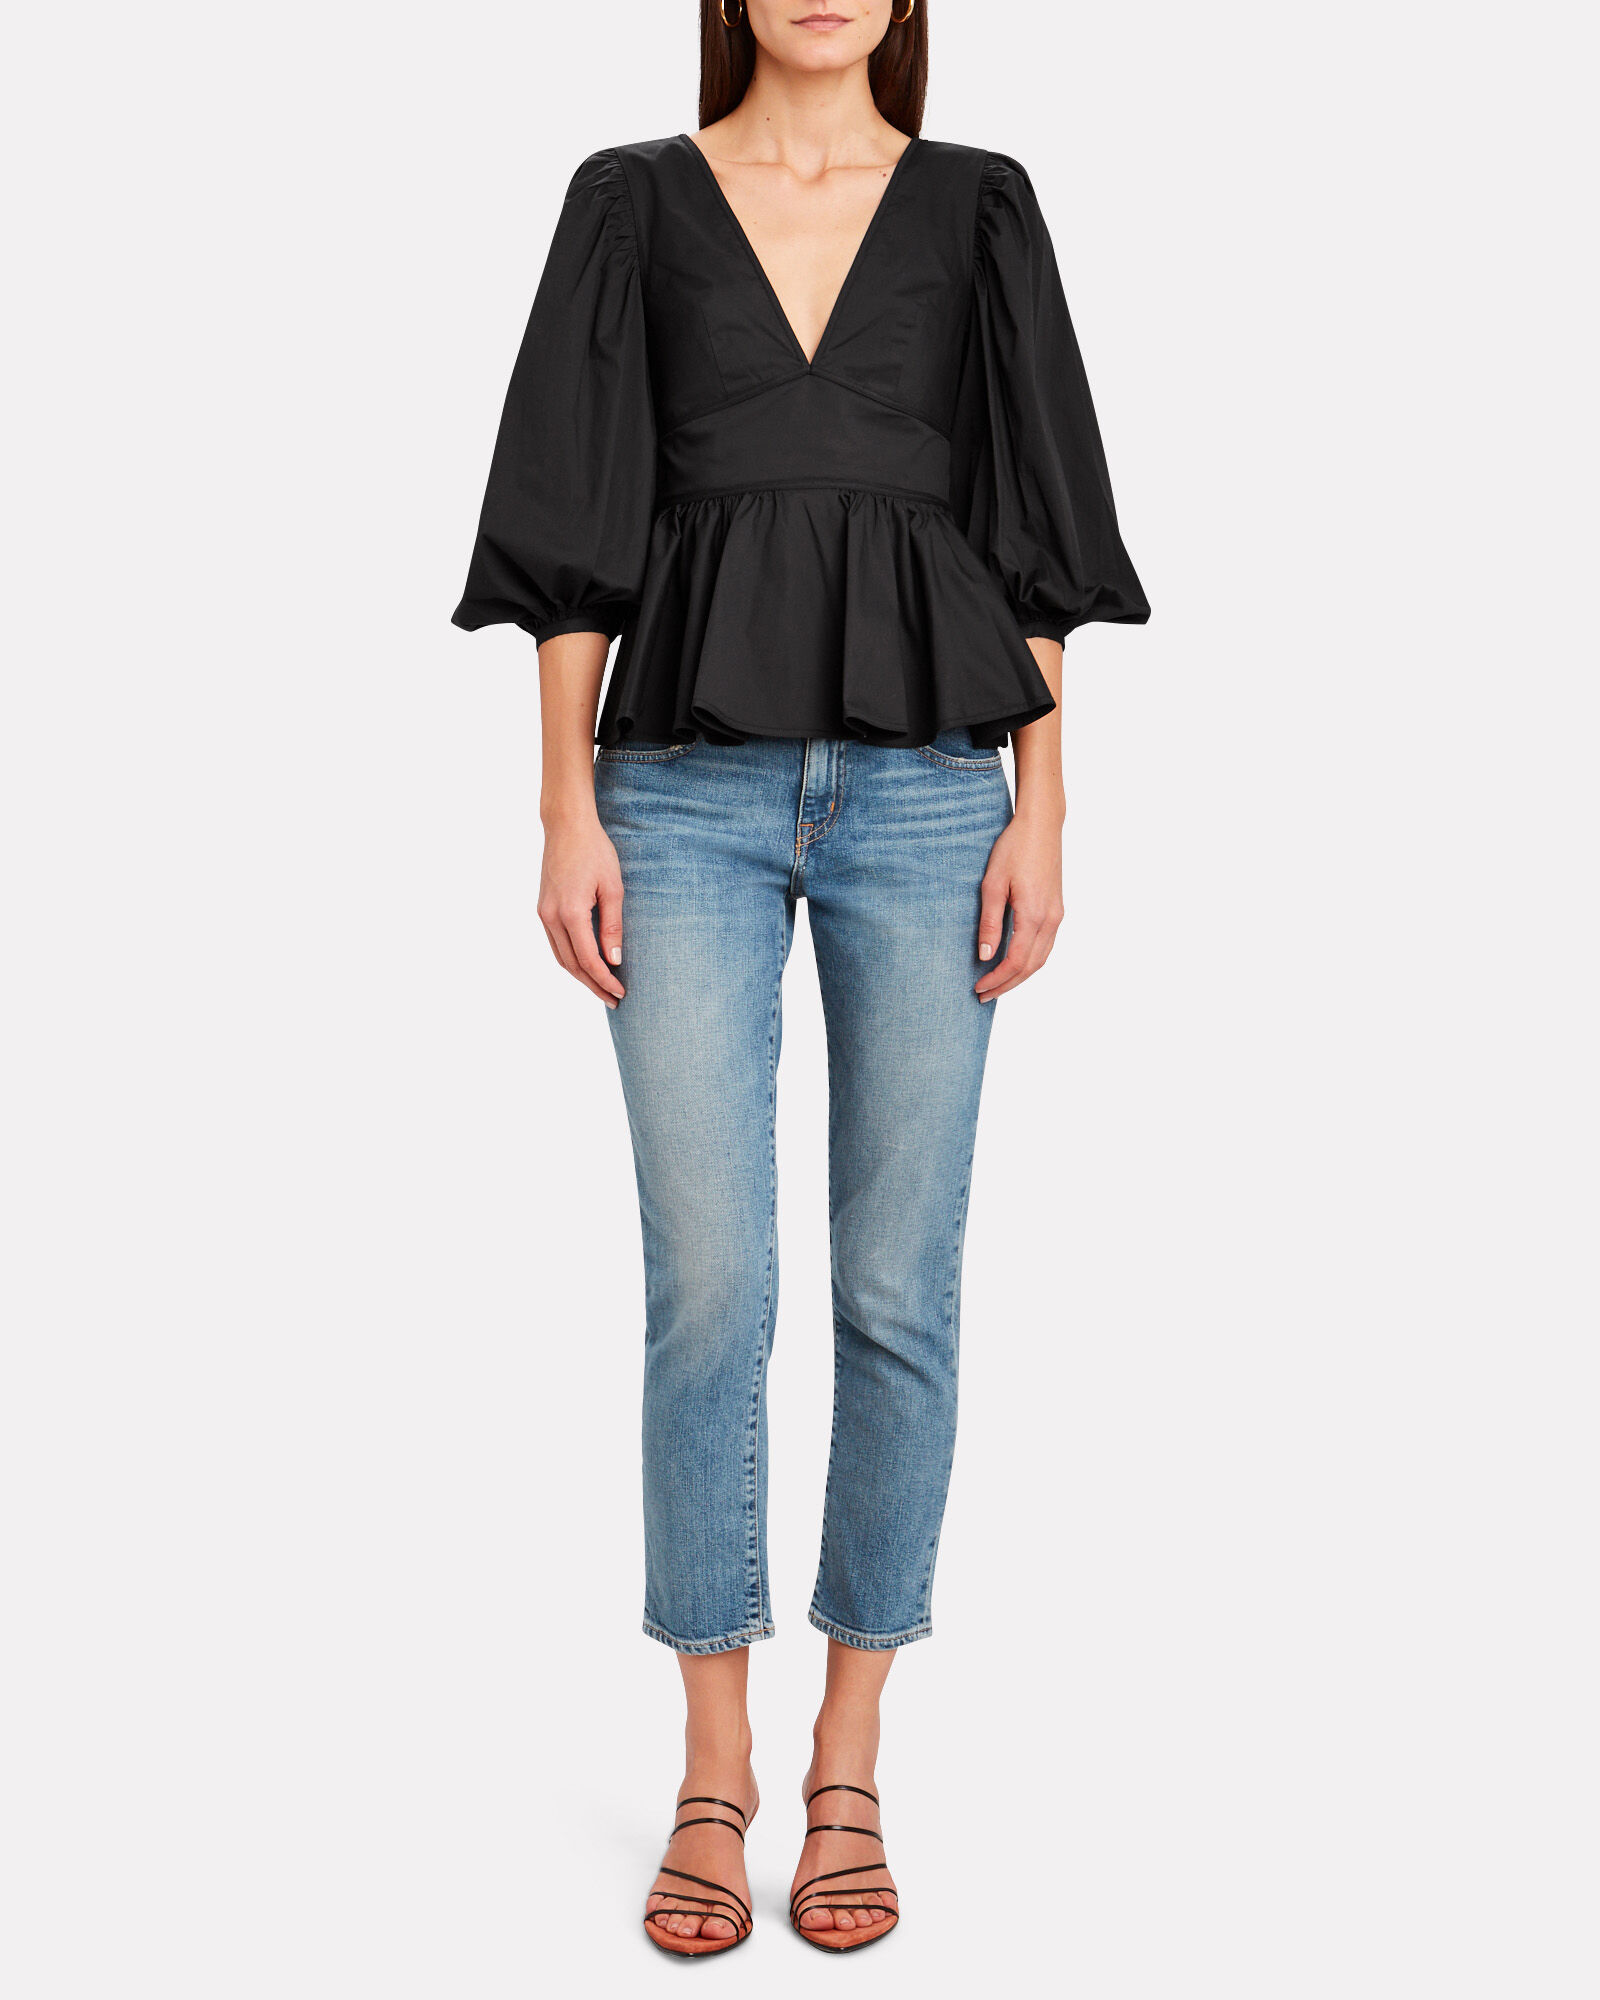 Luna Poplin Puff Sleeve Top, BLACK, hi-res